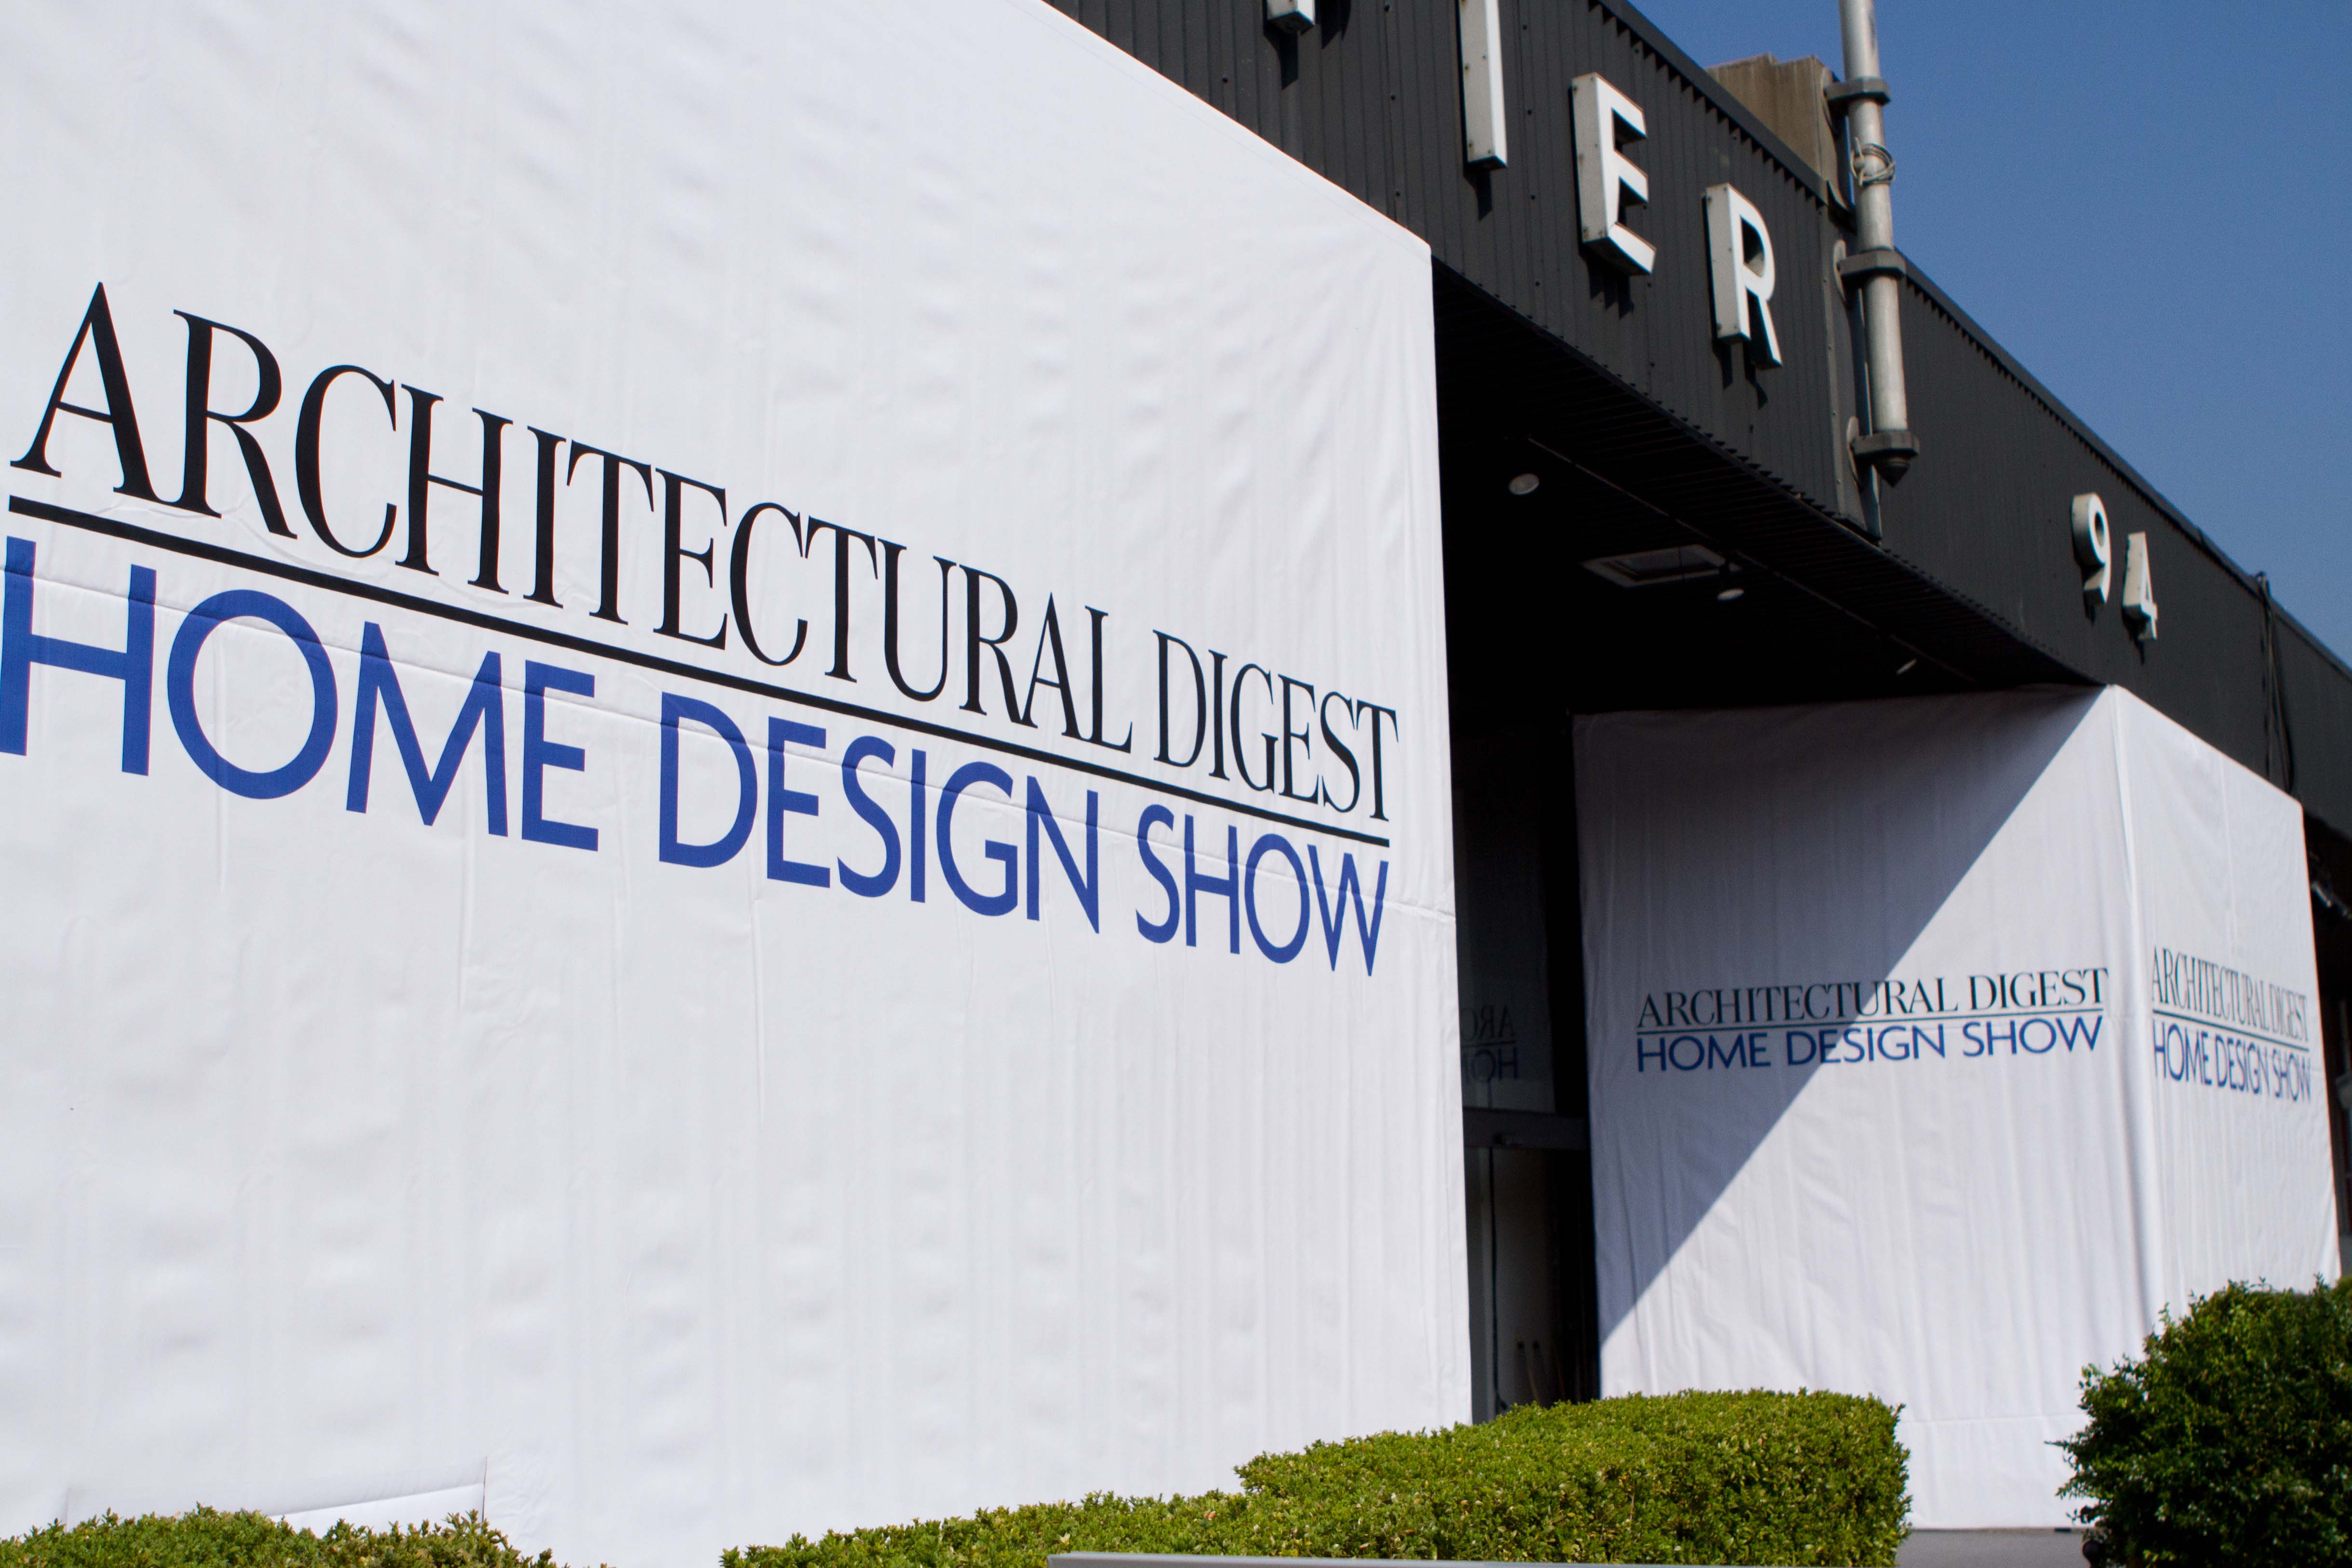 Architectural digest design home show home design and style for Architectural digest home show